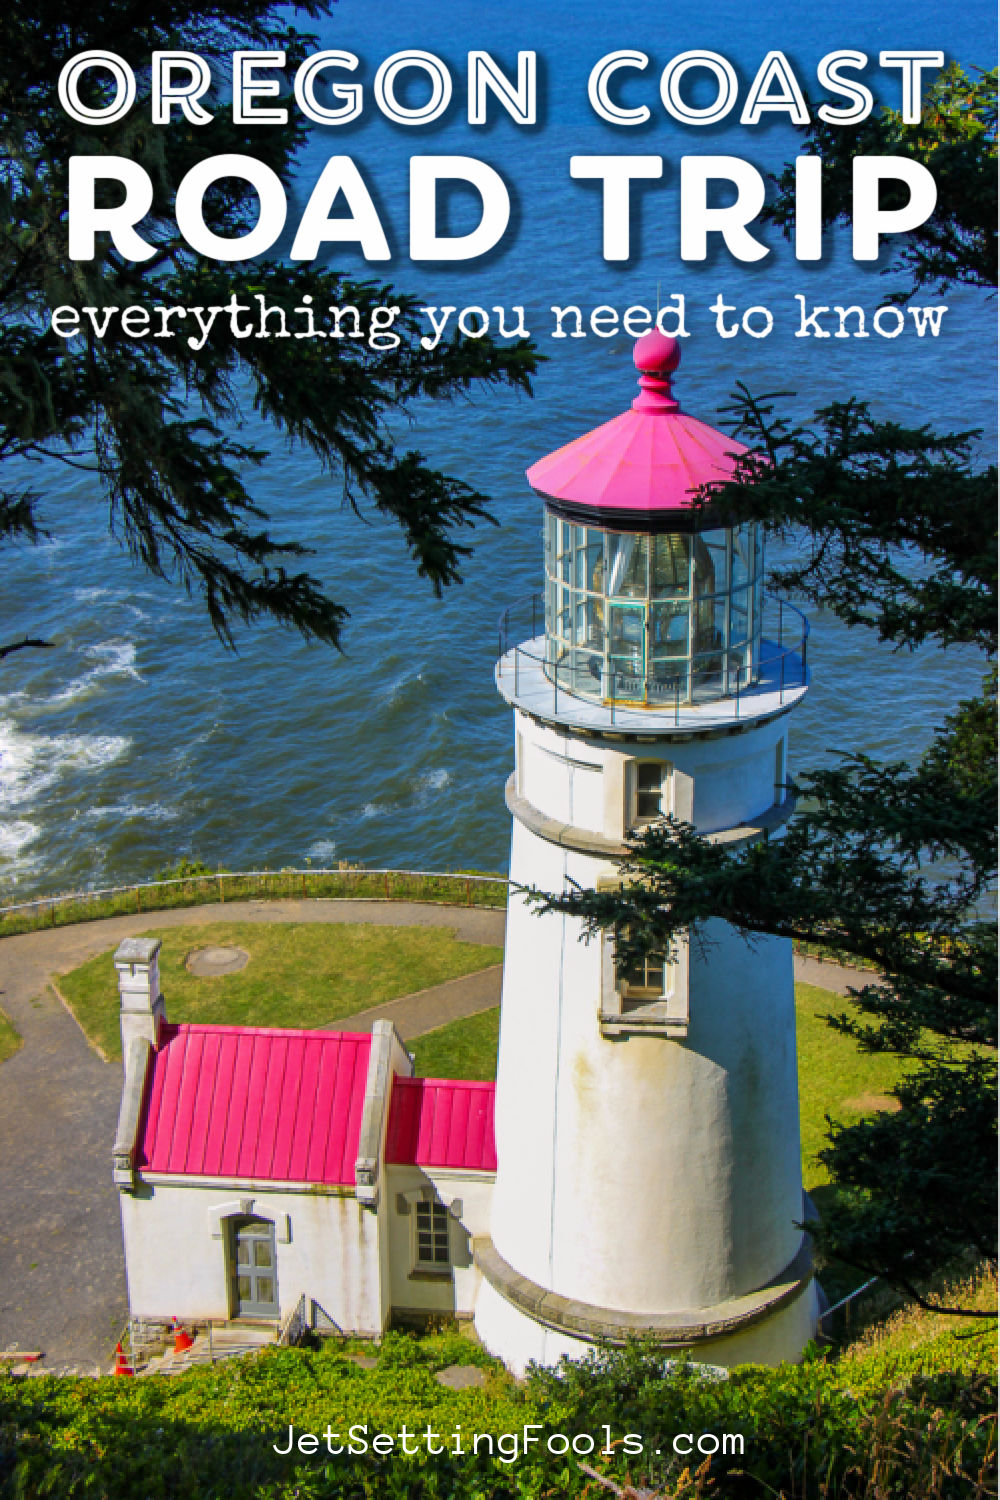 Oregon Coast Road Trip Everything You Need to Know by JetSettingFools.com